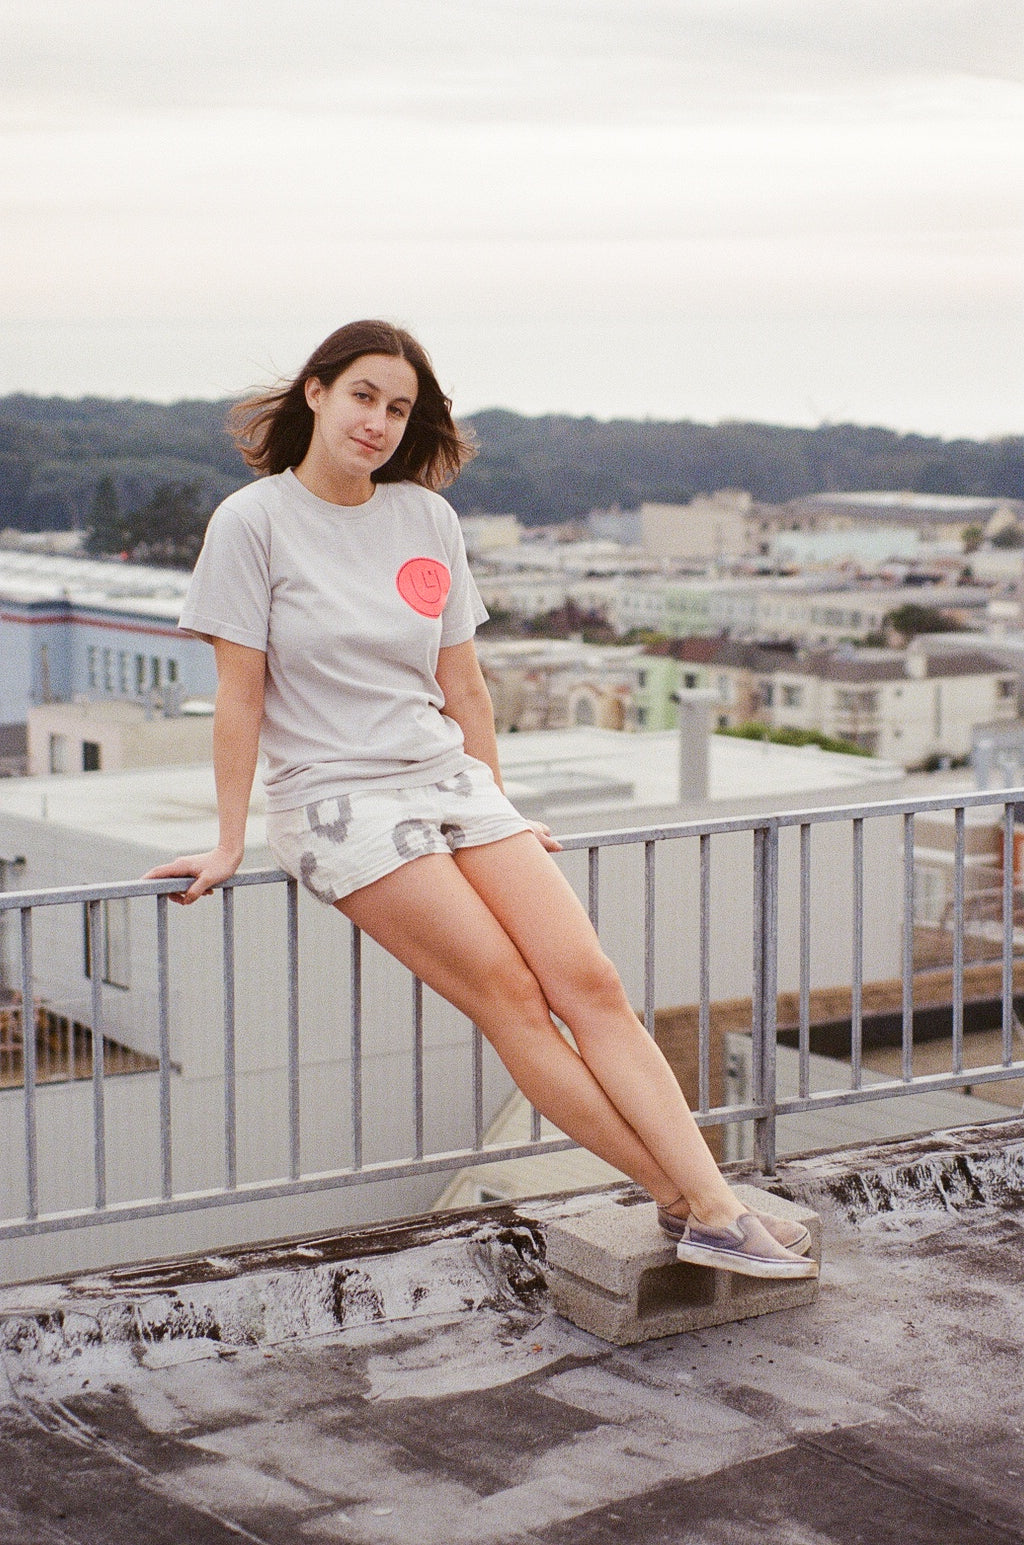 culk face tee san francisco rooftop photoshoot